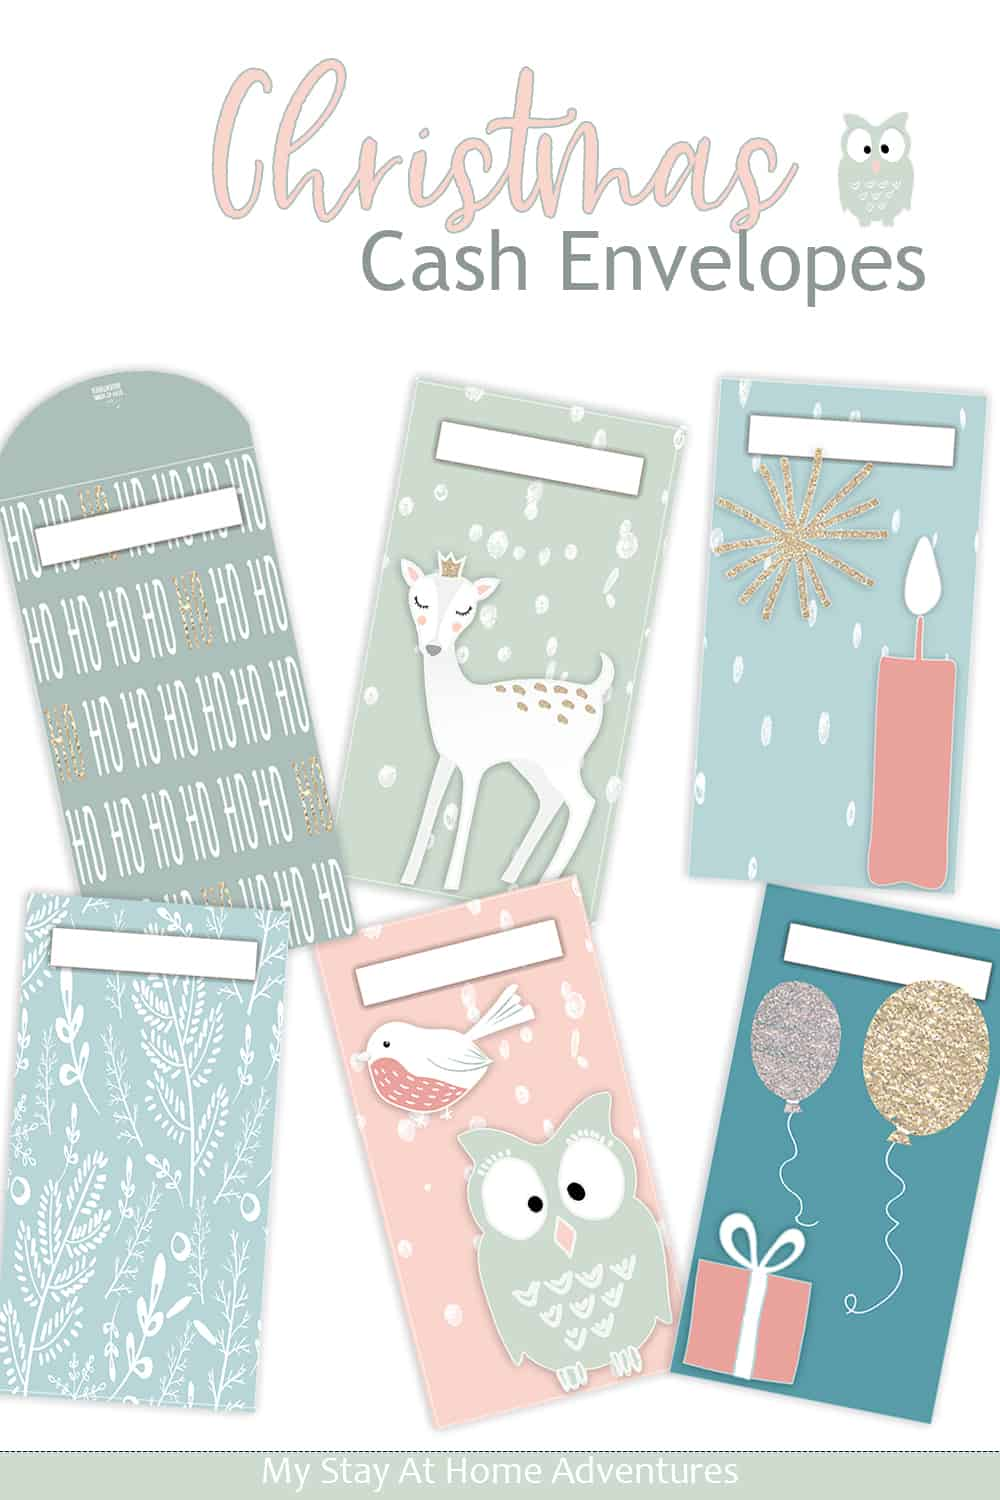 Check out this collection of Christmas Cash Envelopes for cash budgeters. From traditional designs to winter wonderland, find them here. via @mystayathome